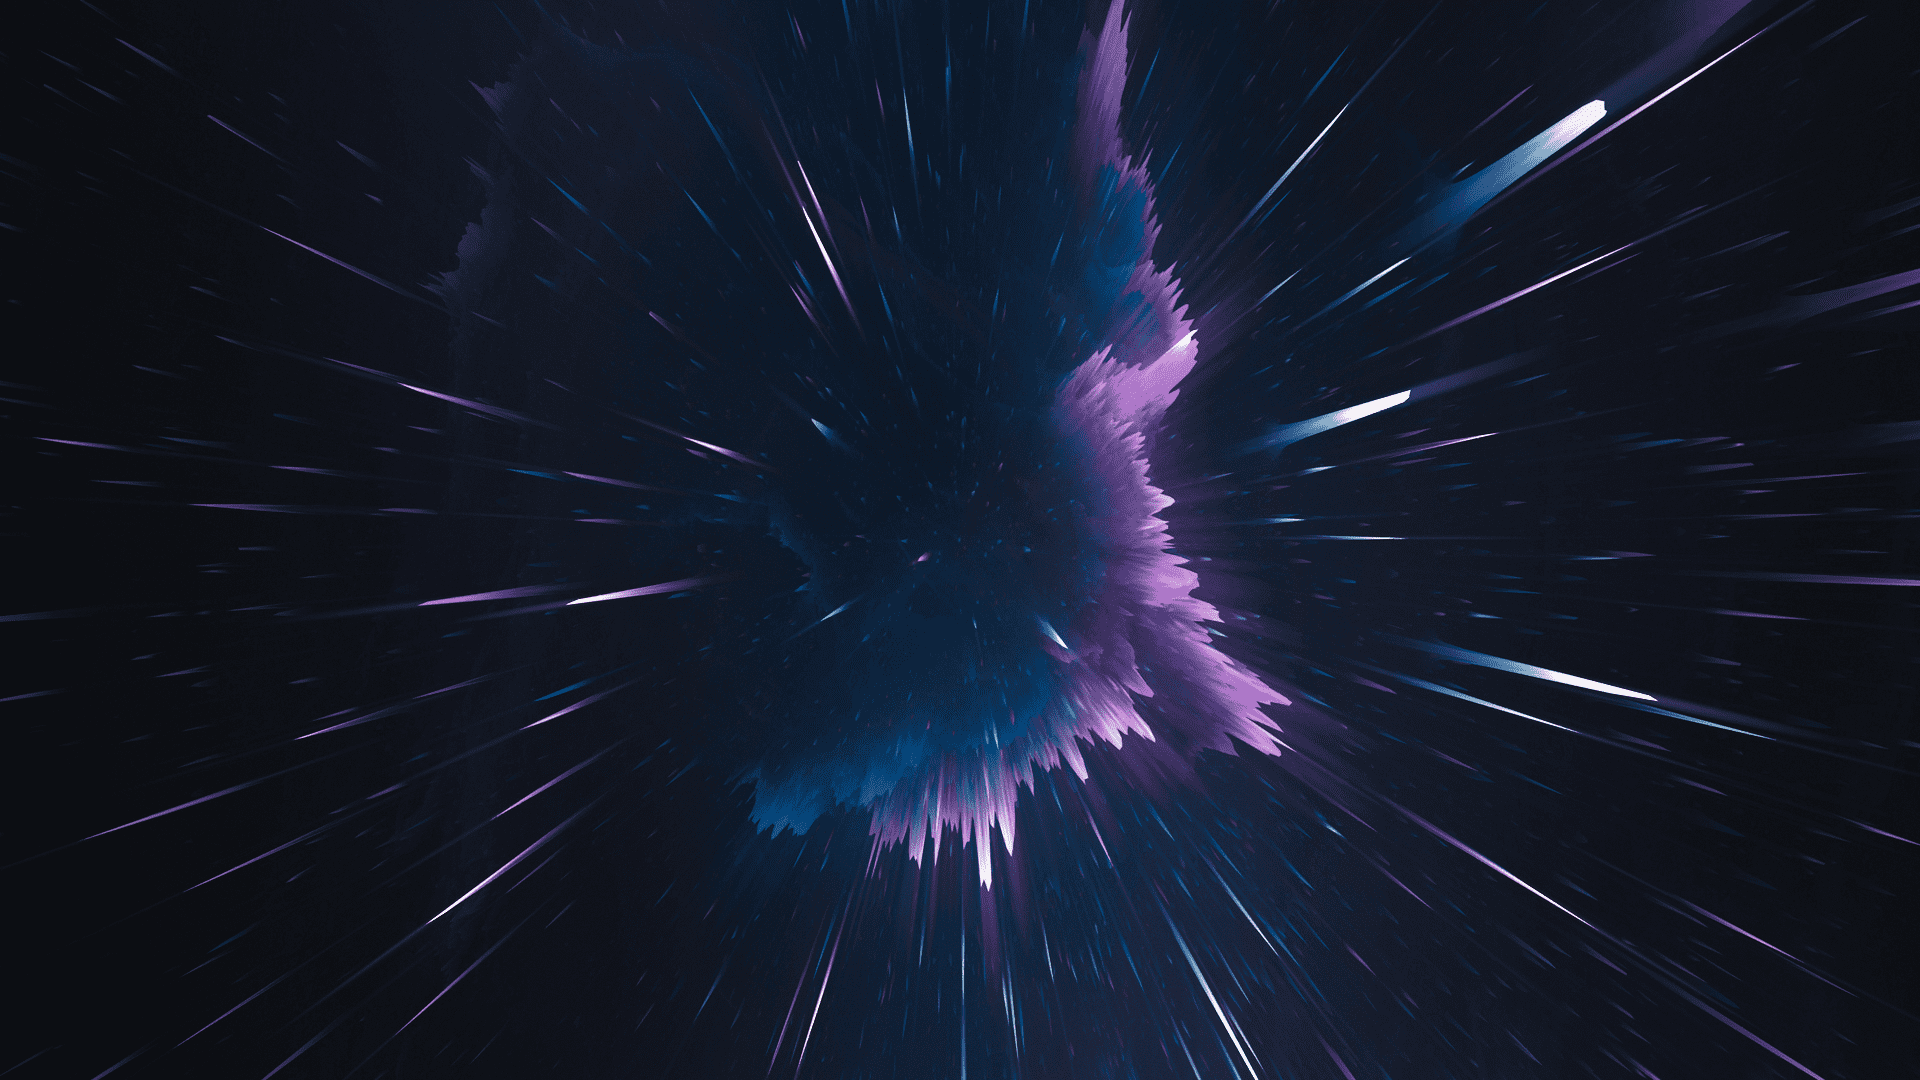 Abstract Space